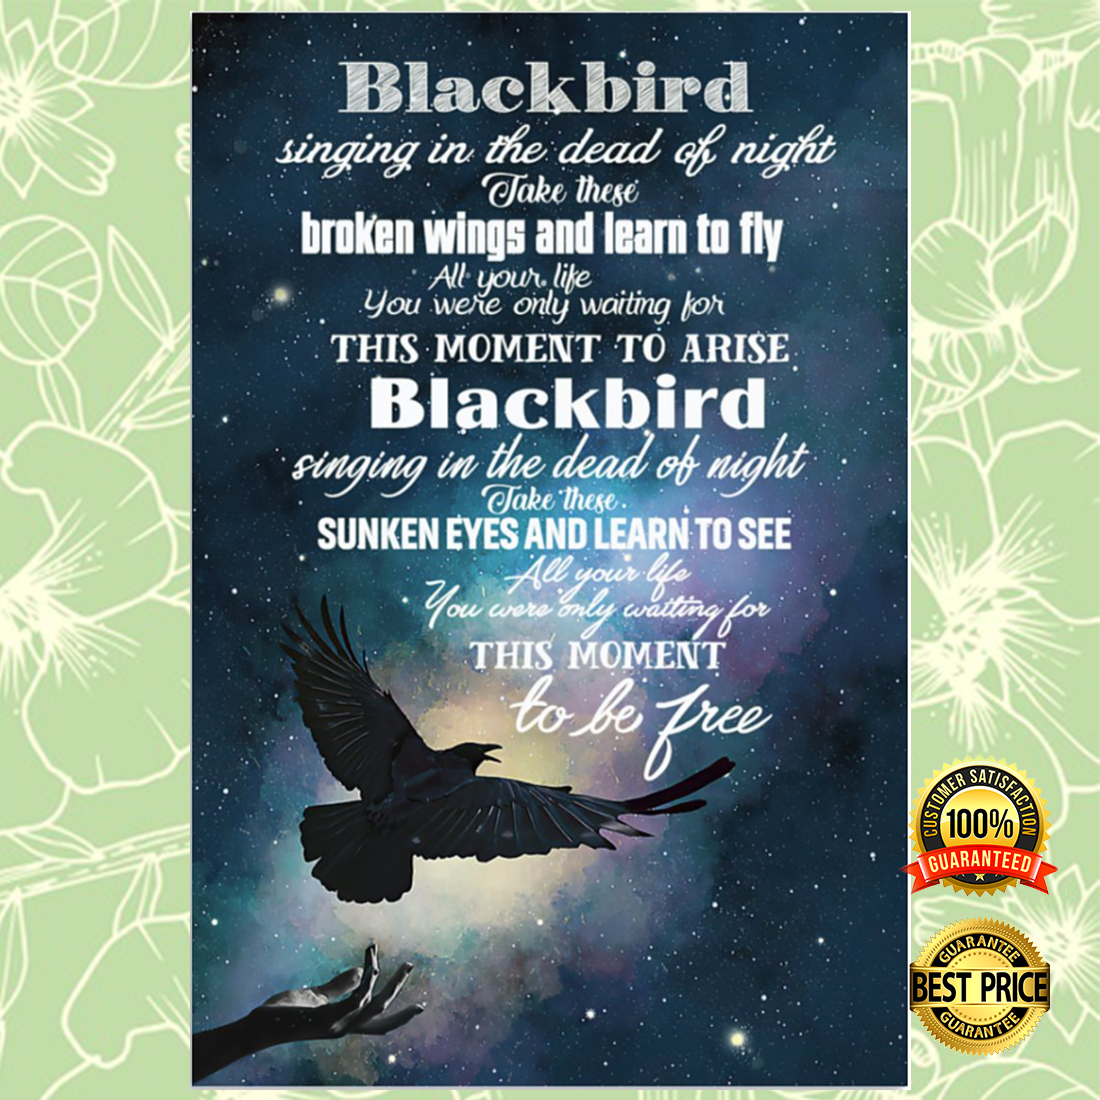 Blackbird singing in the dead of night take these broken wings and learn to fly poster 5